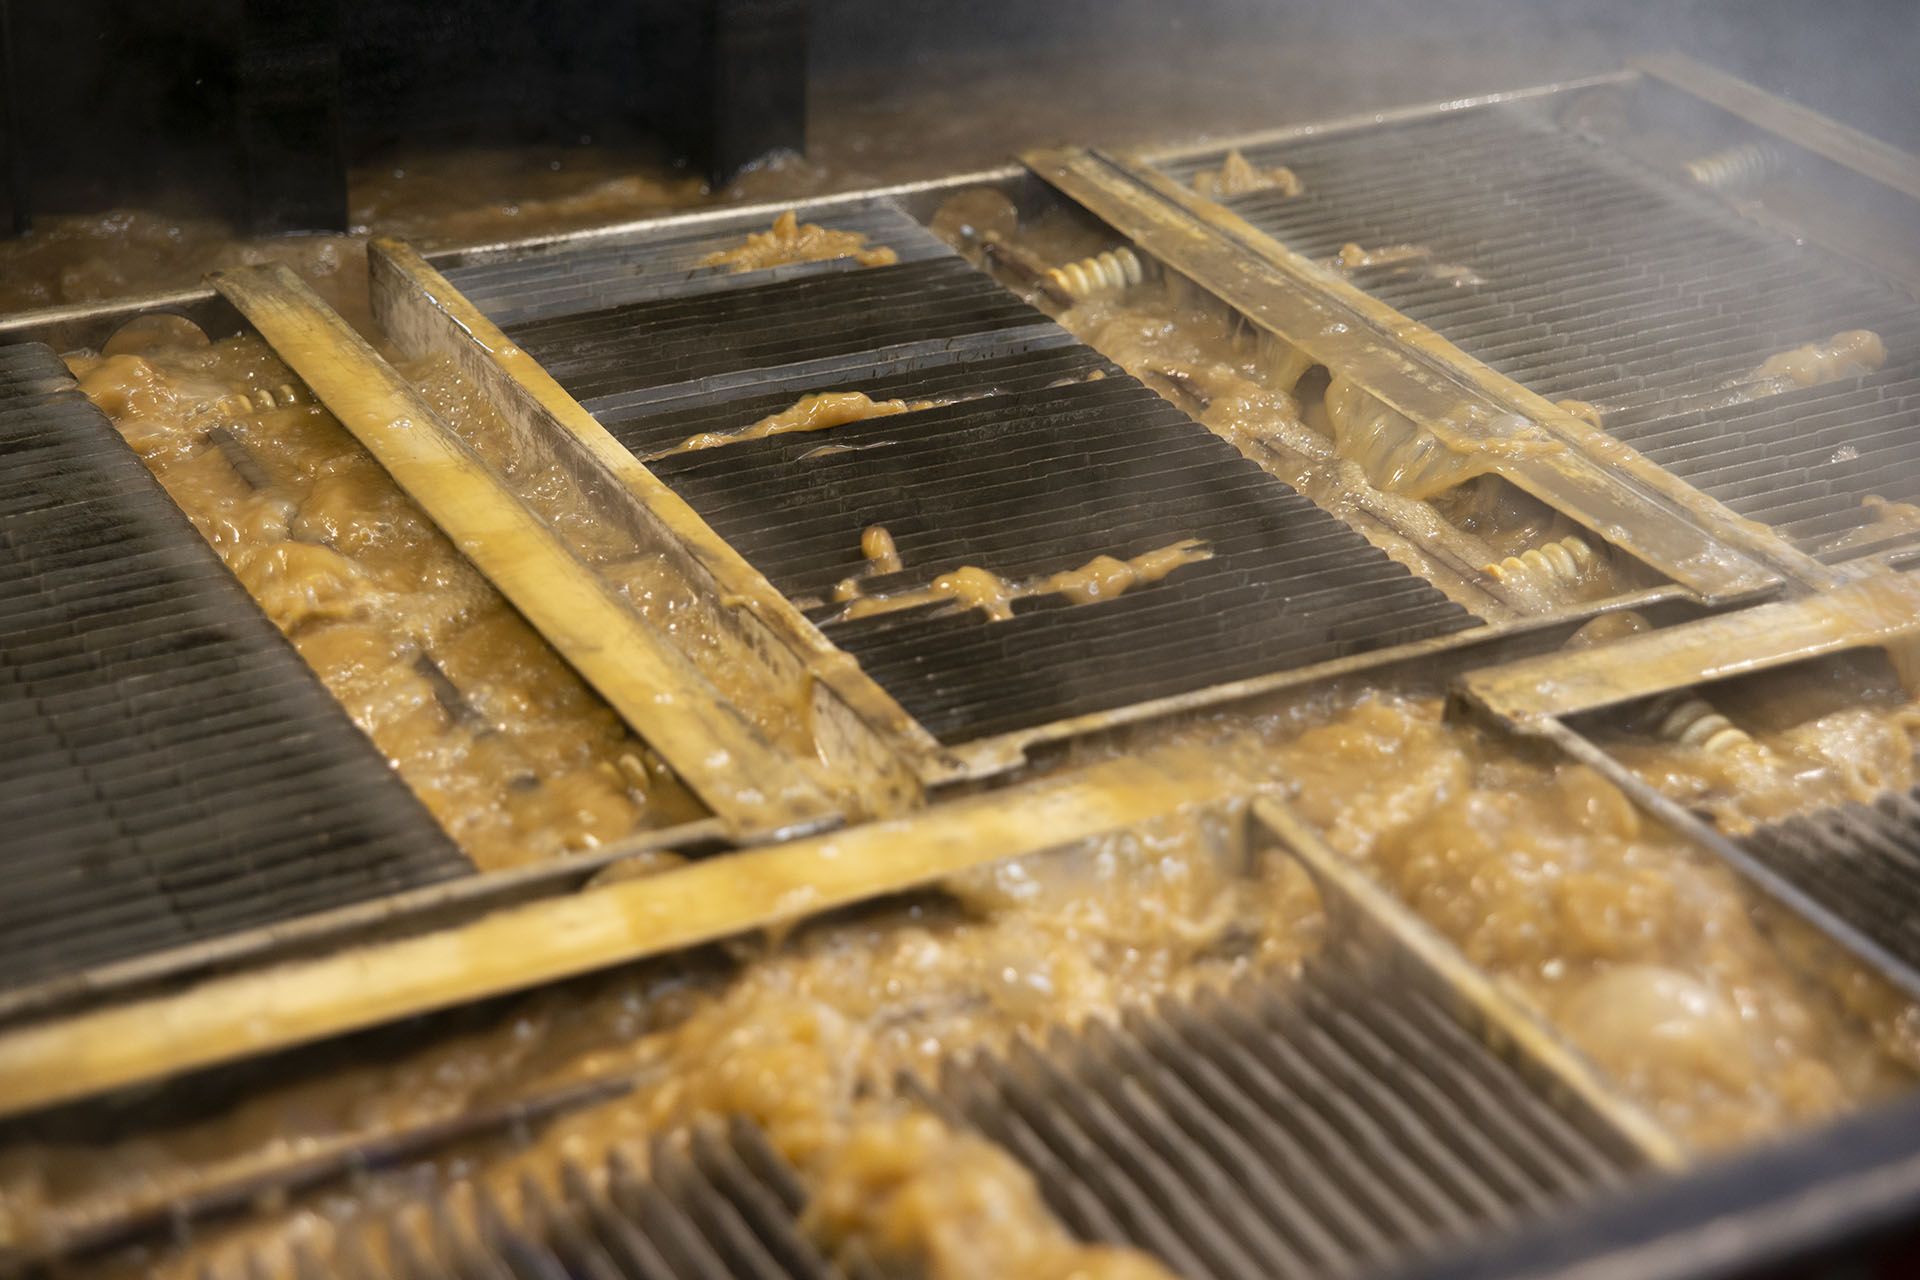 Cleaning Electrostatic Precipitators an Wastewater